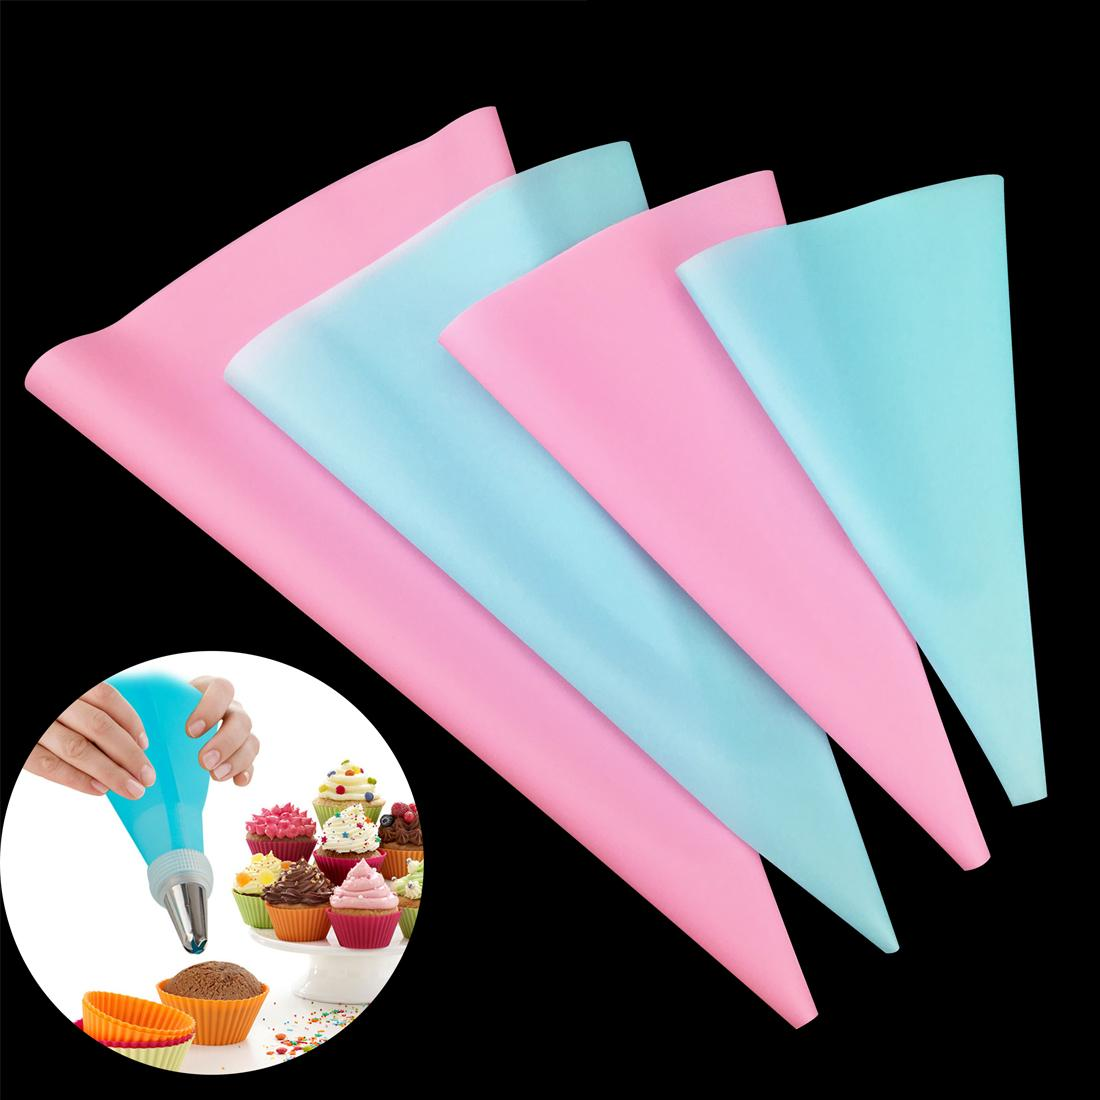 Hot Sale 4pcs Confectionery Bag Silicone Icing Piping Cream Pastry Bag Nozzle DIY Cake Decorating Baking Decorating Tools